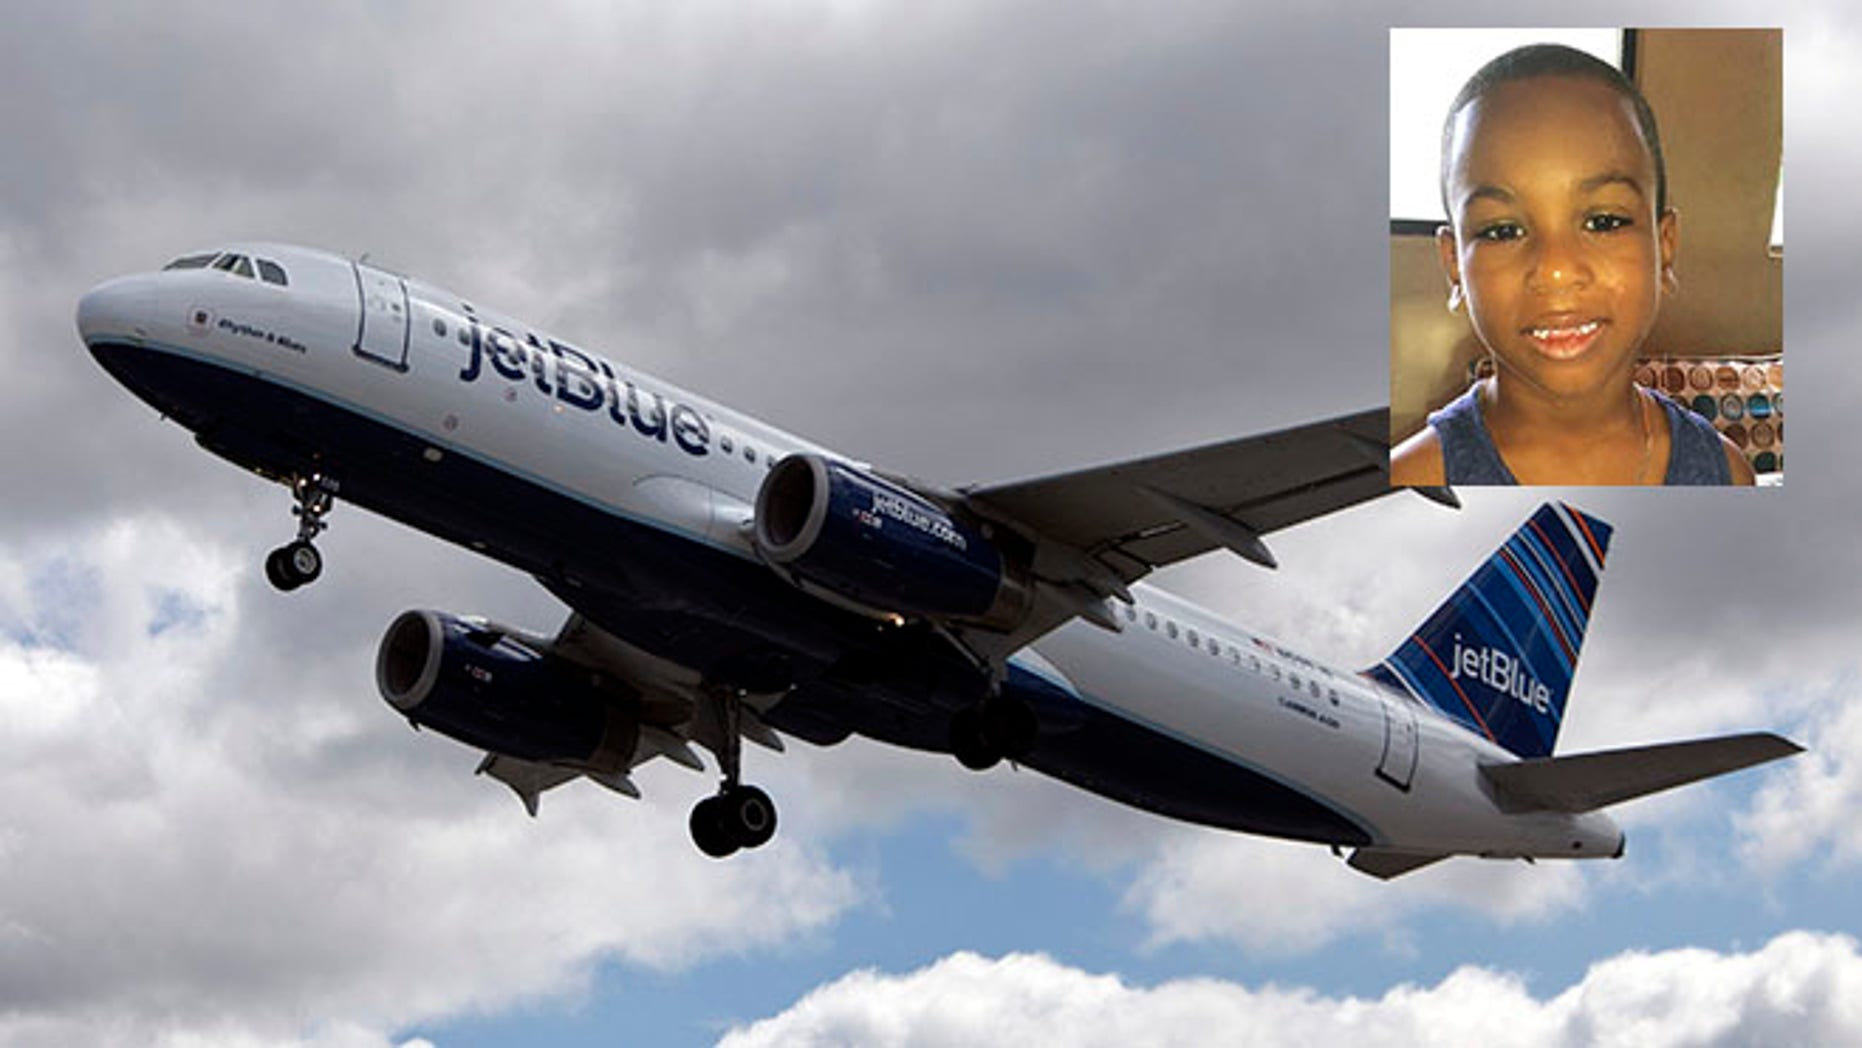 NEW YORK, NY - APRIL 27: A JetBlue plane is seen at John F. Kennedy International Airport April 27, 2012 in the Queens borough of New York City.  (Photo by Allison Joyce/Getty Images)